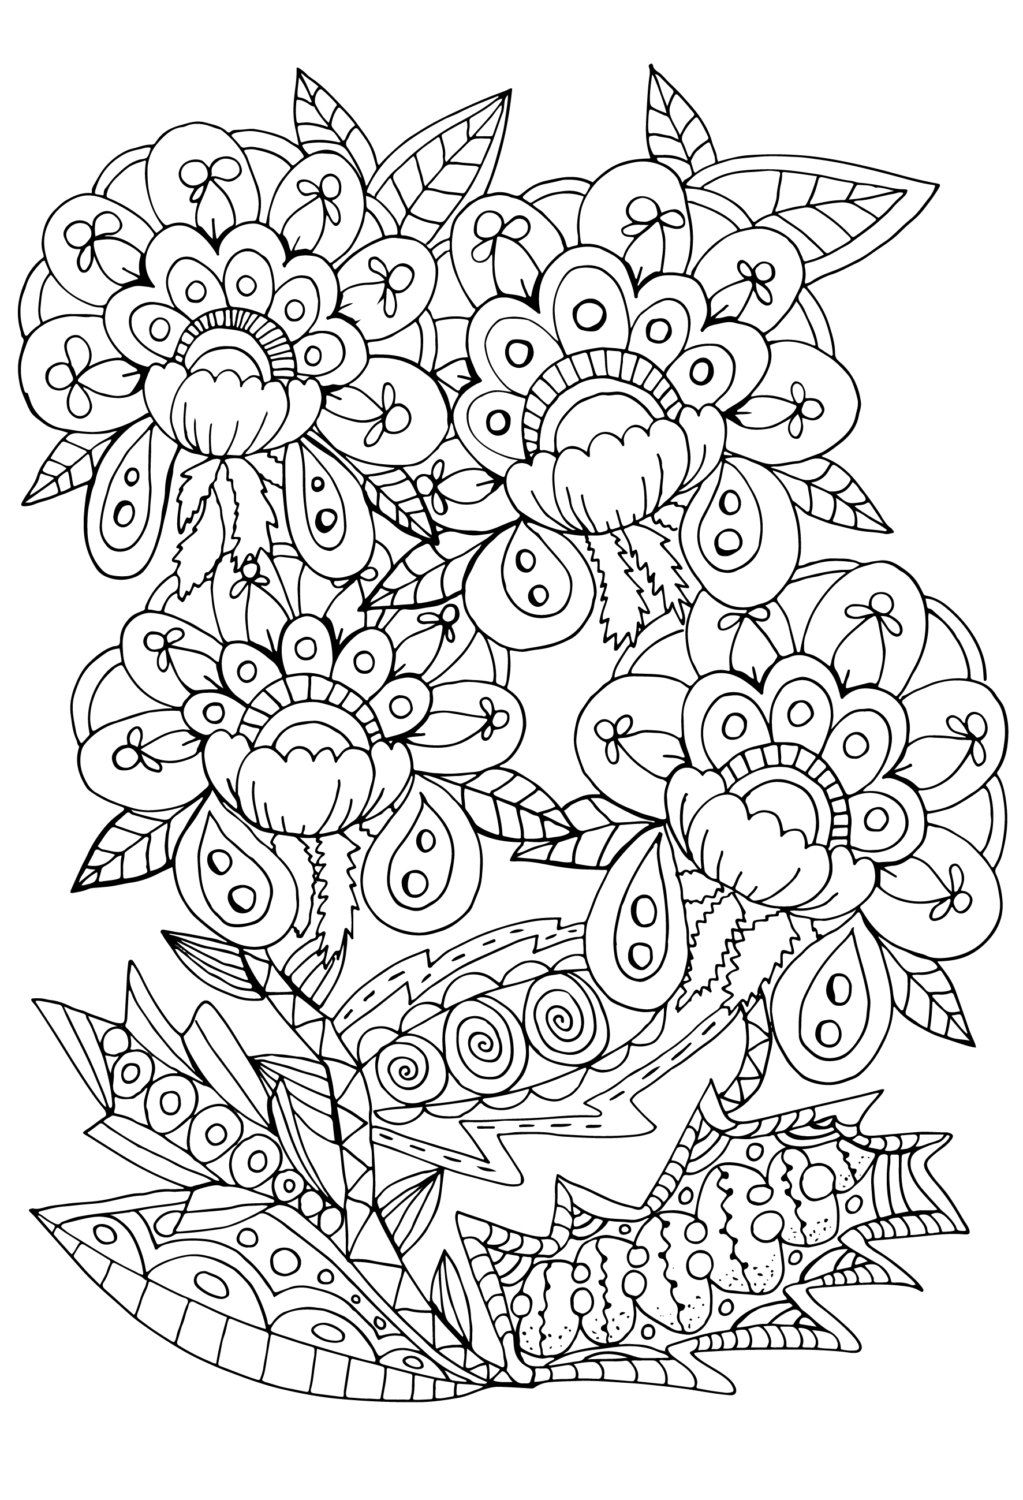 Coloring Pages for Adult Adult Coloring Pages Adult Coloring ...